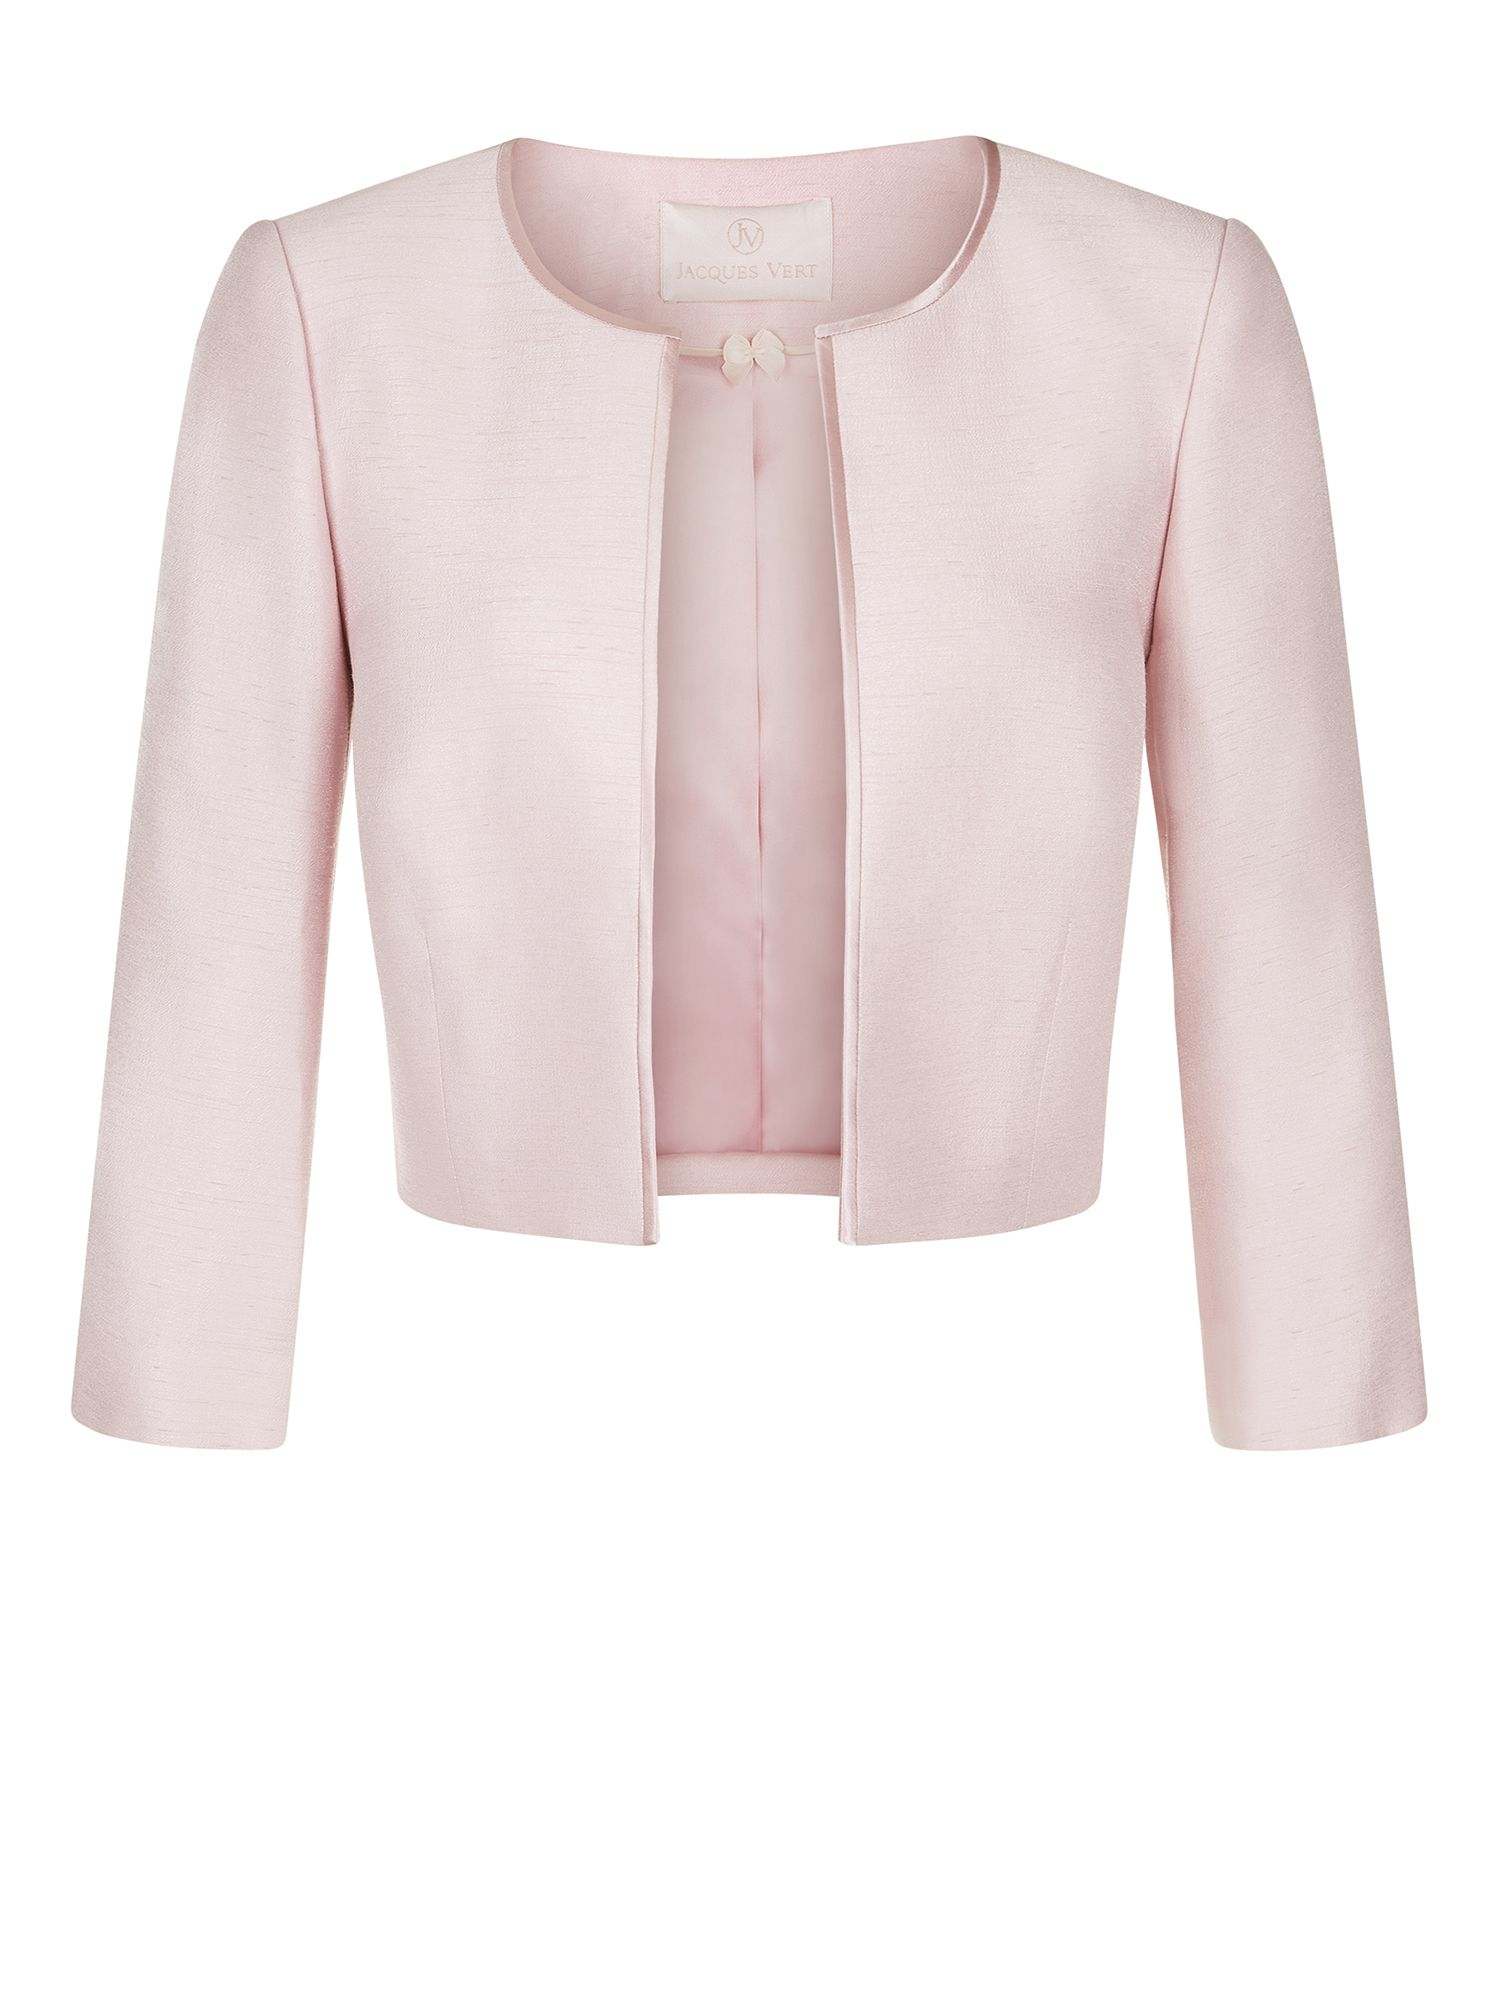 Cropped Pink Jacket - Coat Nj